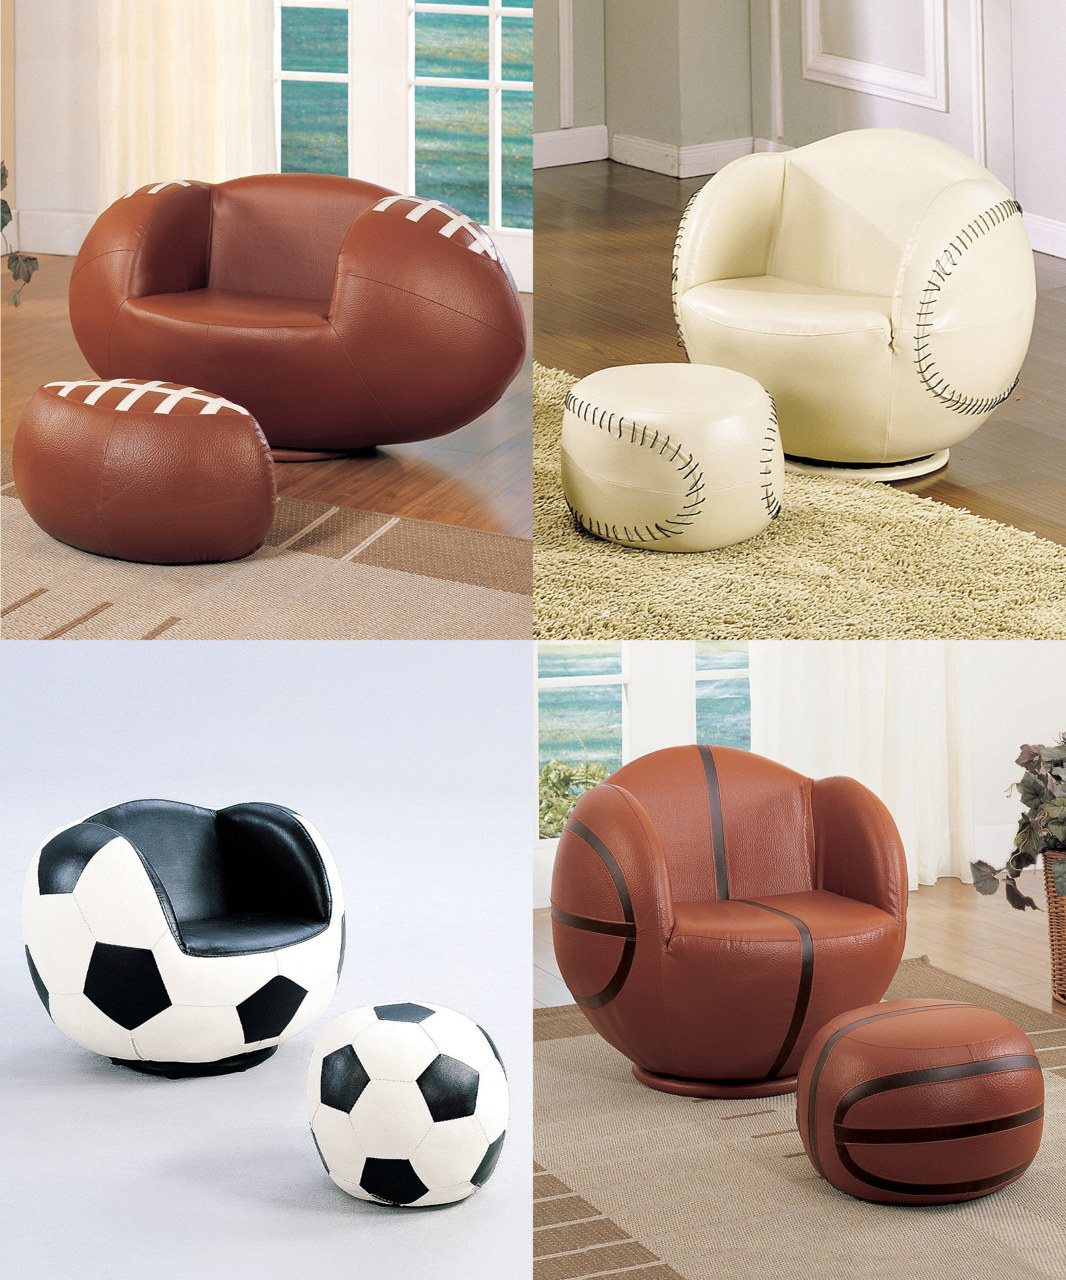 A kid's room is their palace and these sporty chairs are as special as thrones.